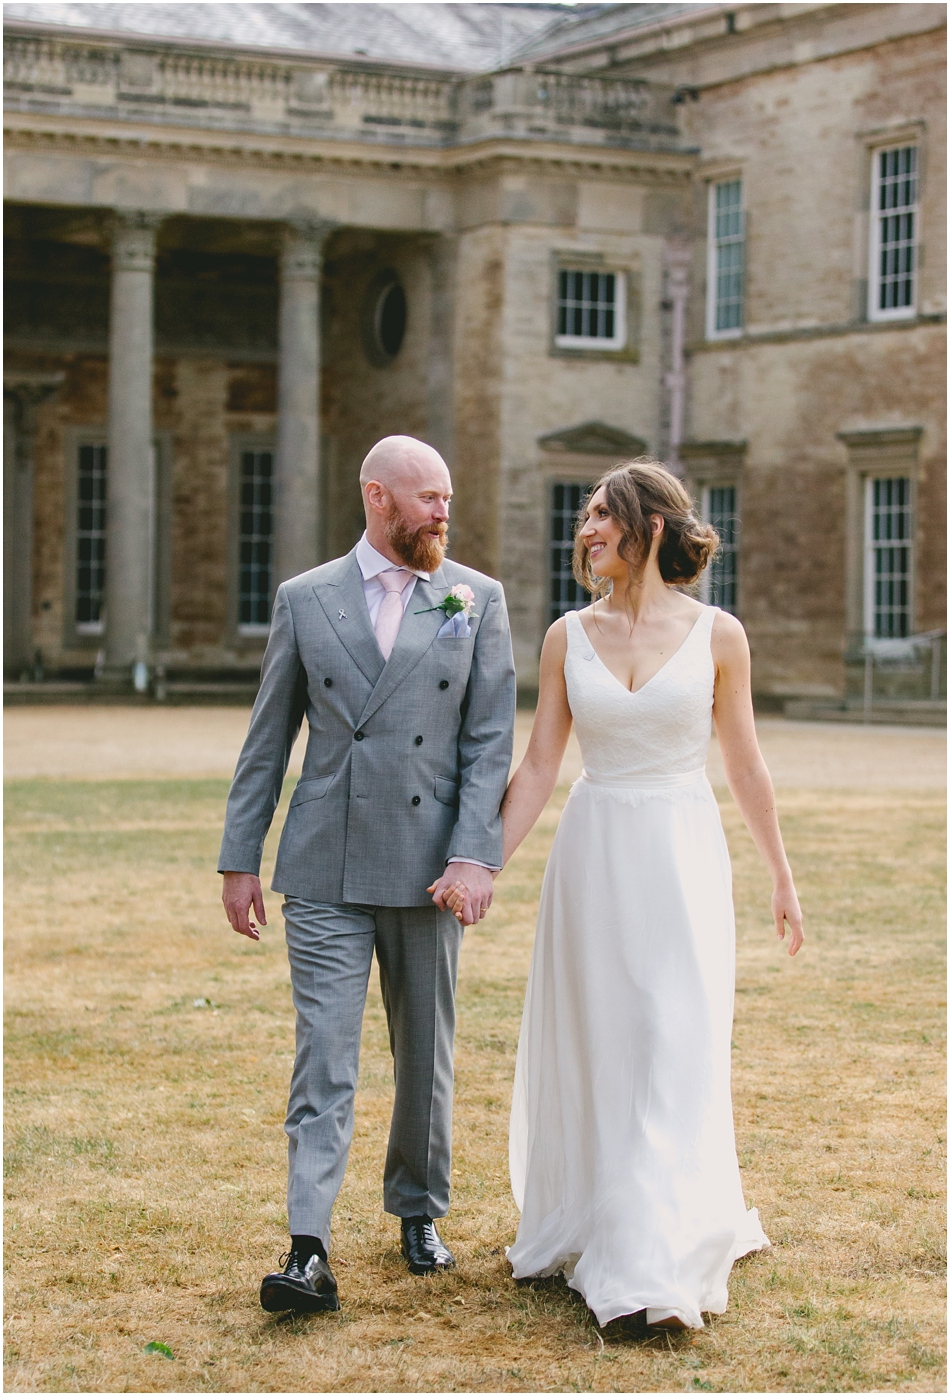 Compton Verney wedding photography;Bride and Groom walking in the grounds holding hands